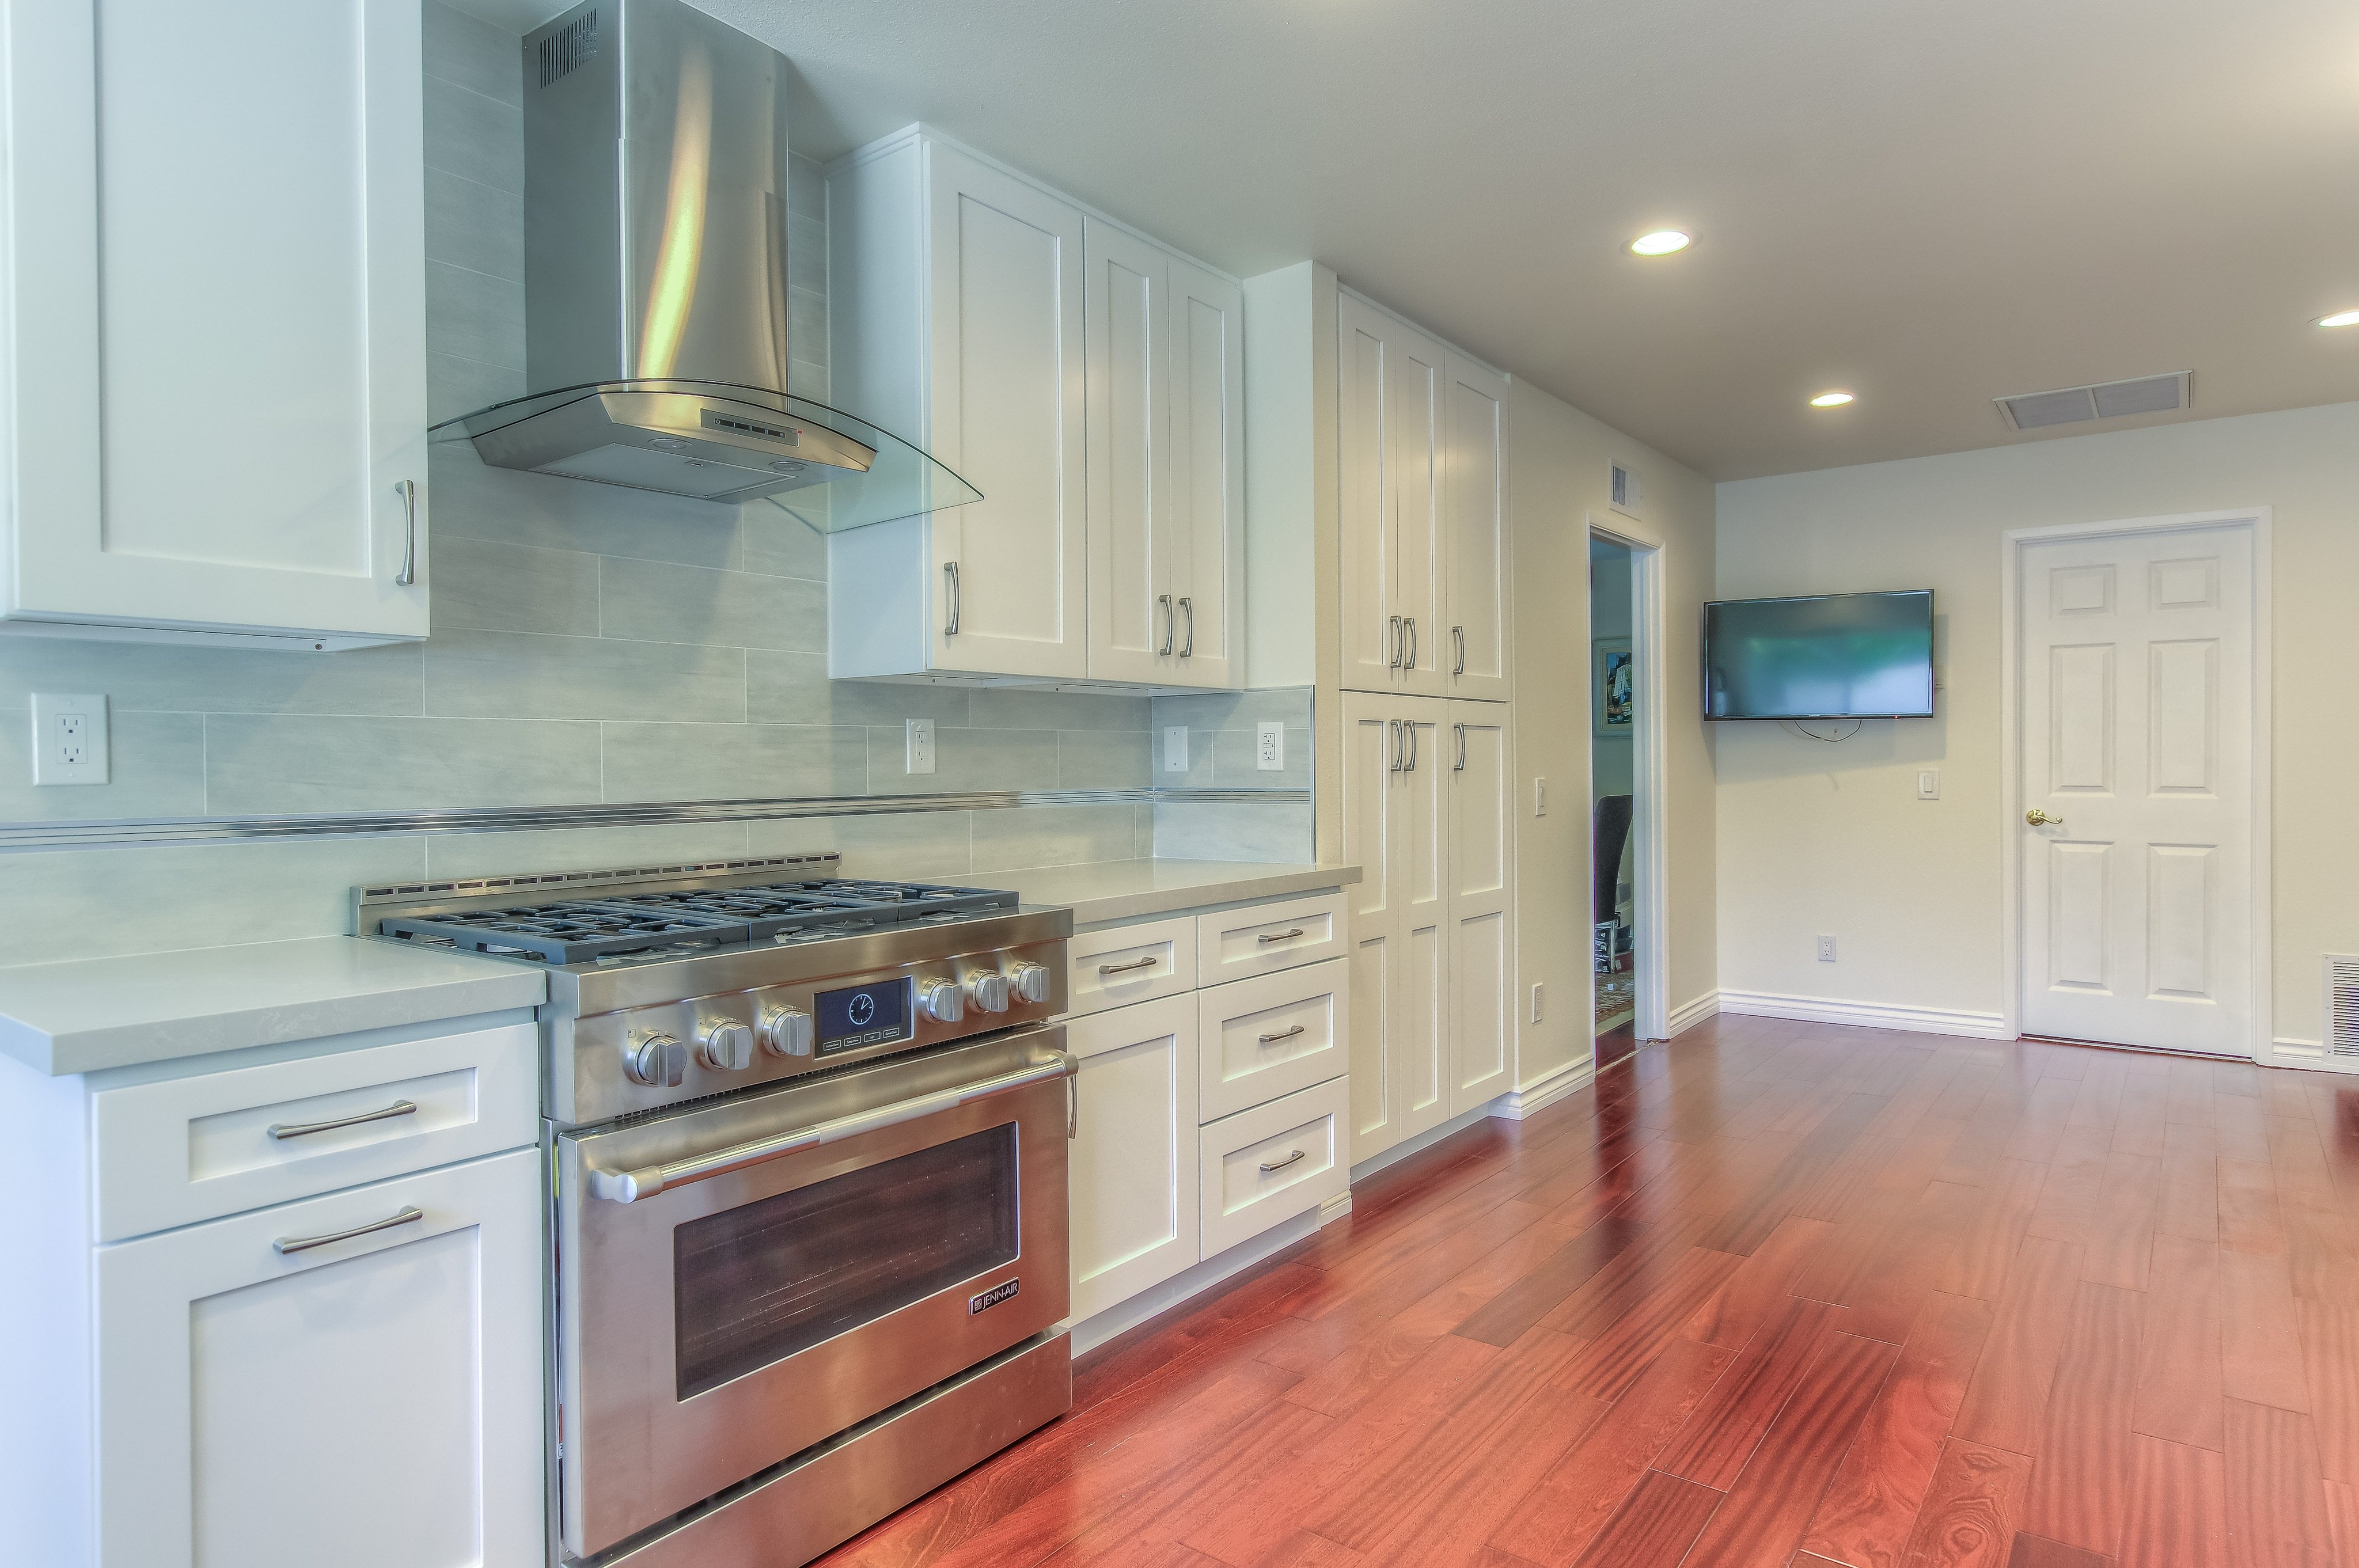 Kitchen Remodel - Woodland Hills